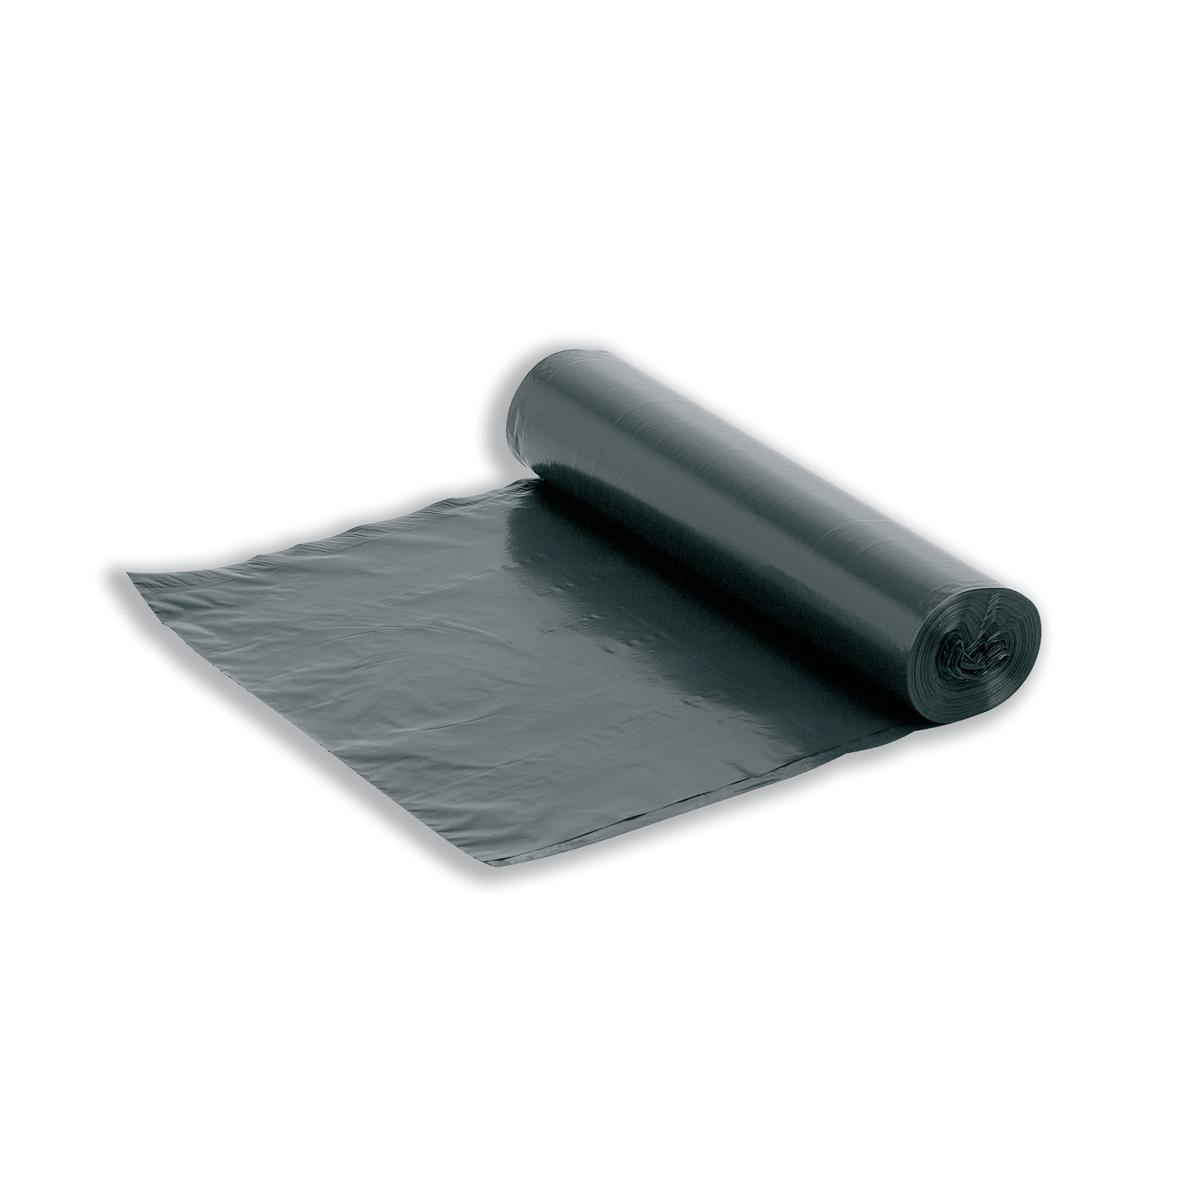 Bin Bags & Liners 5 Star Facilities Bin Liners Medium/Heavy Duty Rolled 95 Litre Capacity W425/725xH840mm Black Roll 20